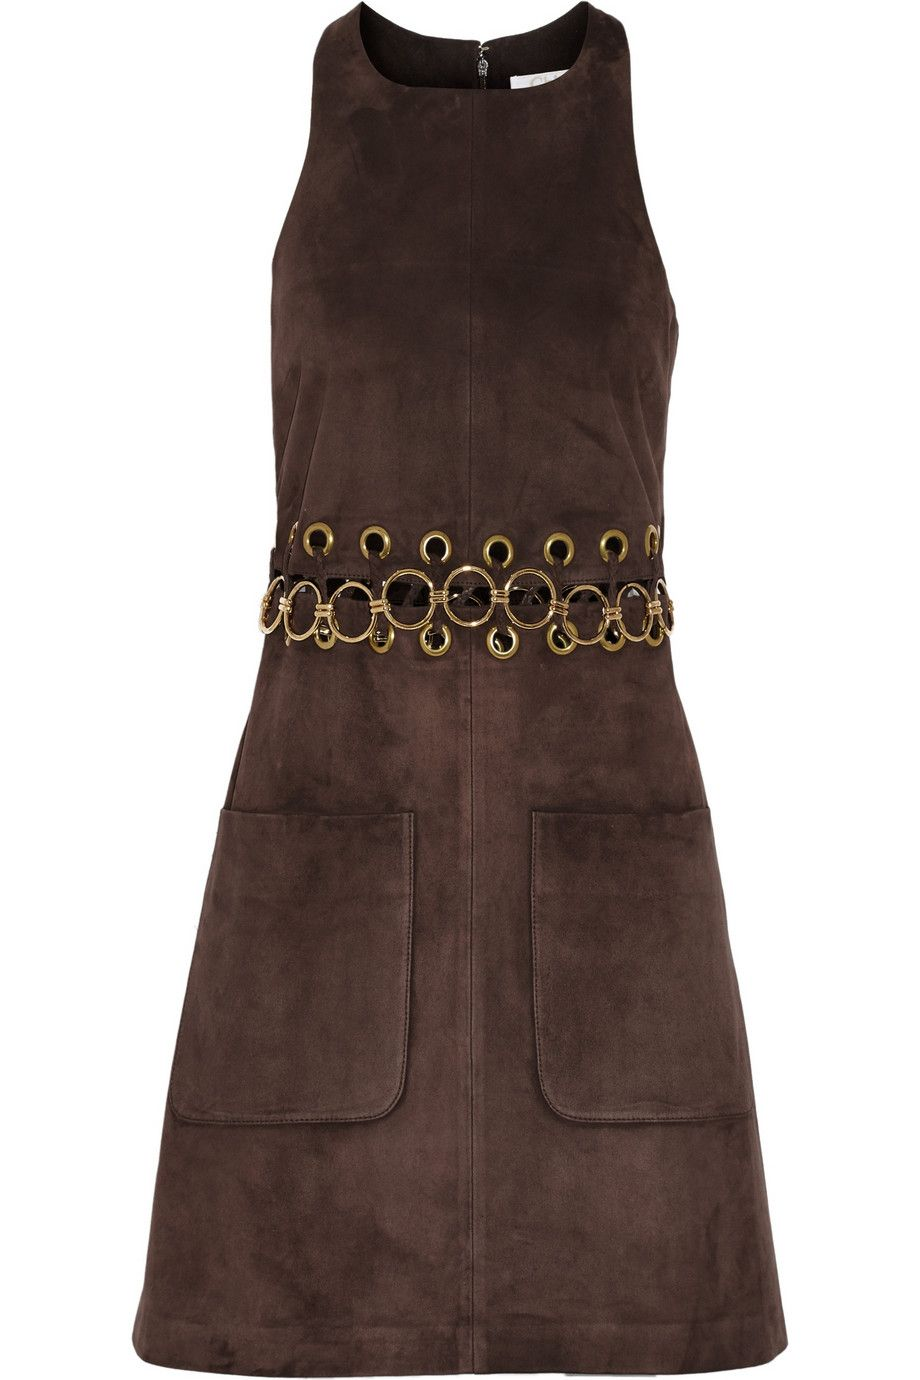 "Chlo&eacute; Embellished Suede Mini Dress, $2,795; &lt;a href=""http://www.net-a-porter.com/product/544814/Chloe/embellished-suede-mini-dress""&gt;net-a-porter.com&lt;/a&gt;   <!--EndFragment-->"